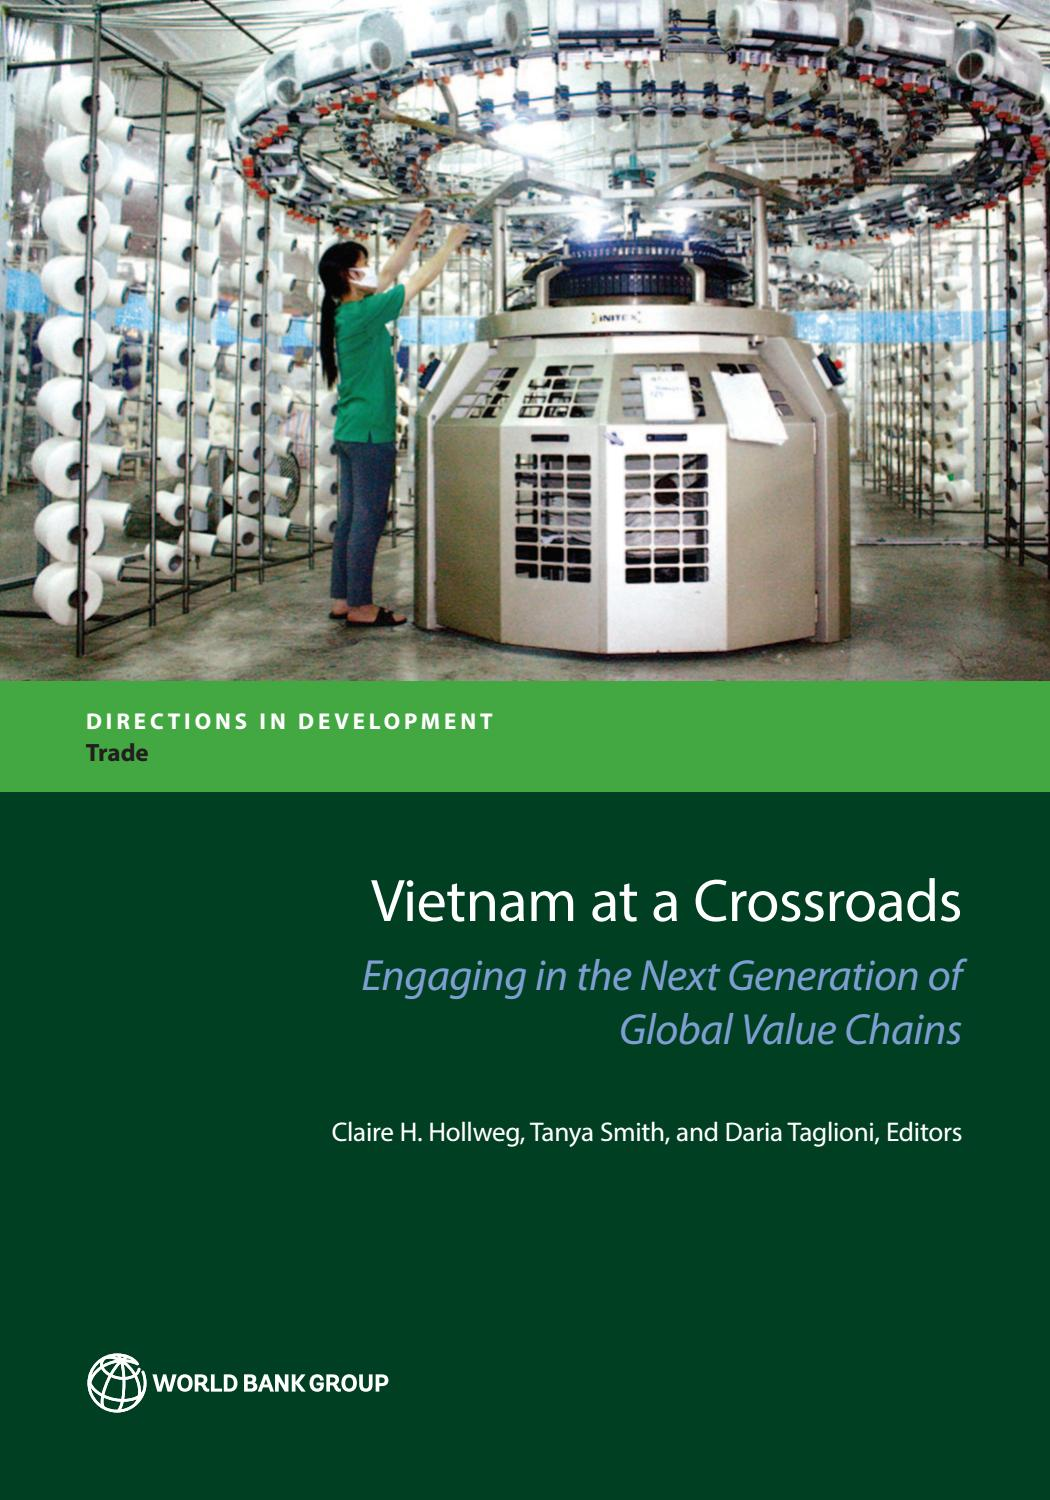 Vietnam at a Crossroads by World Bank Group Publications - issuu